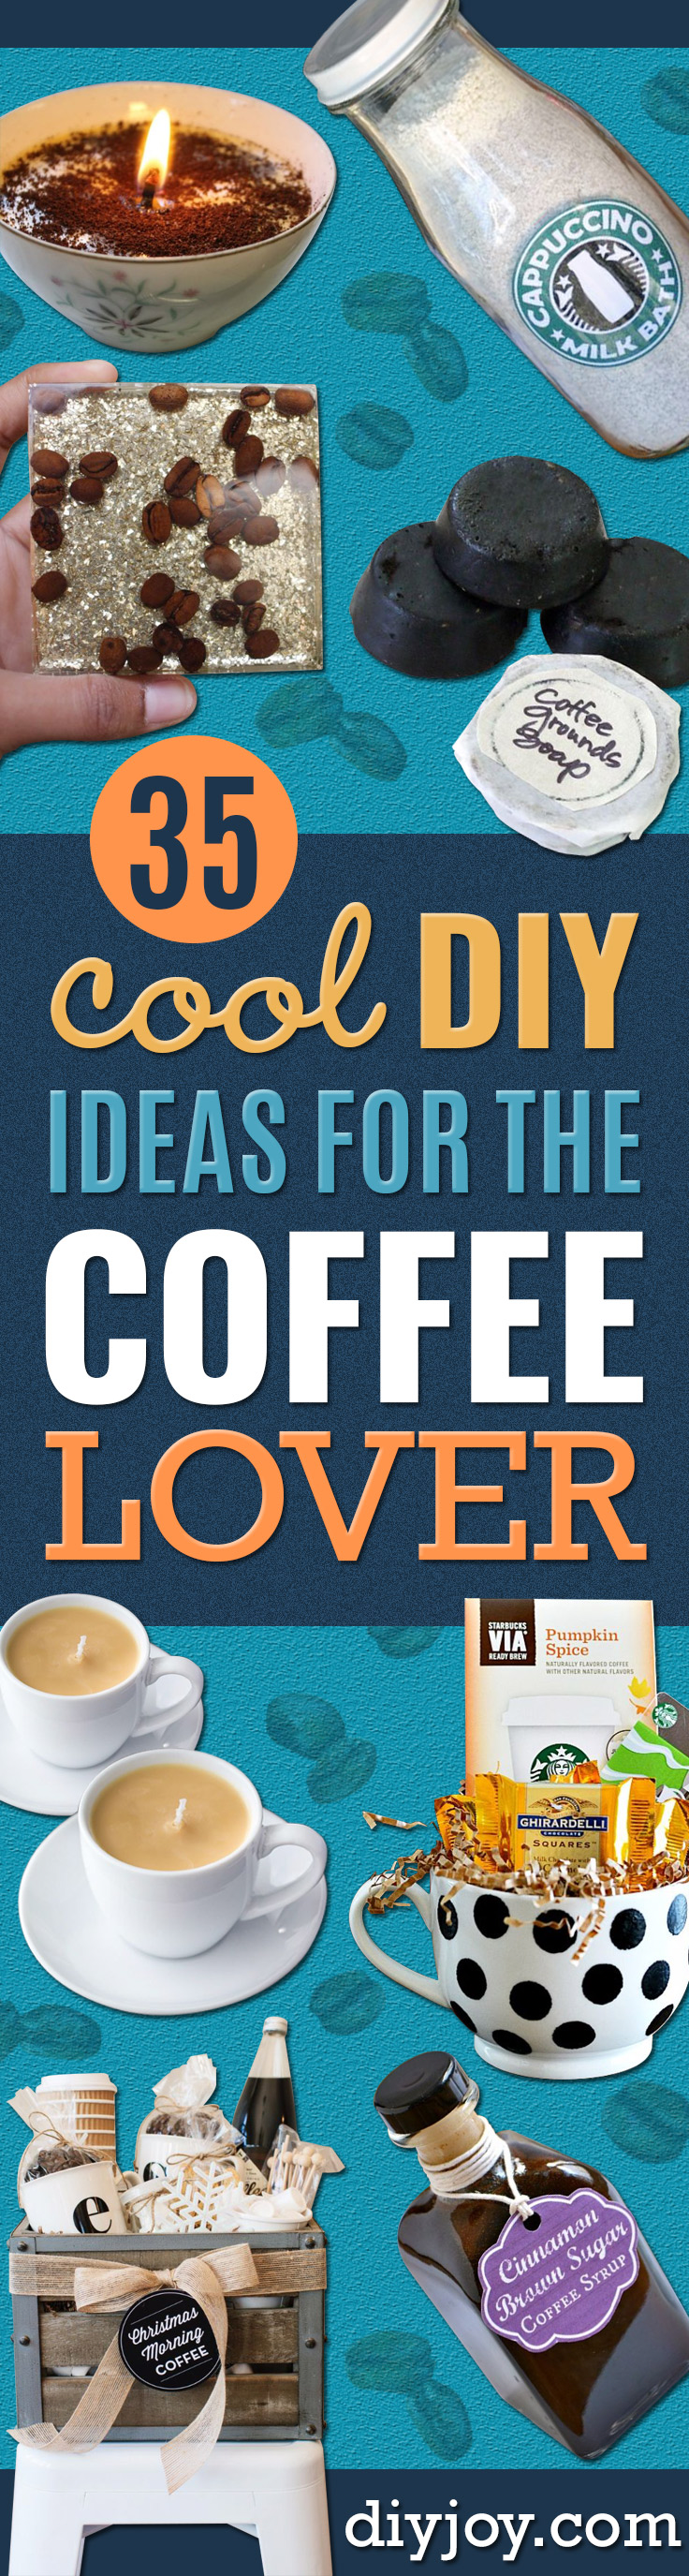 Diy Ideas For The Coffee Lover Easy And Cool Gift People Who Love